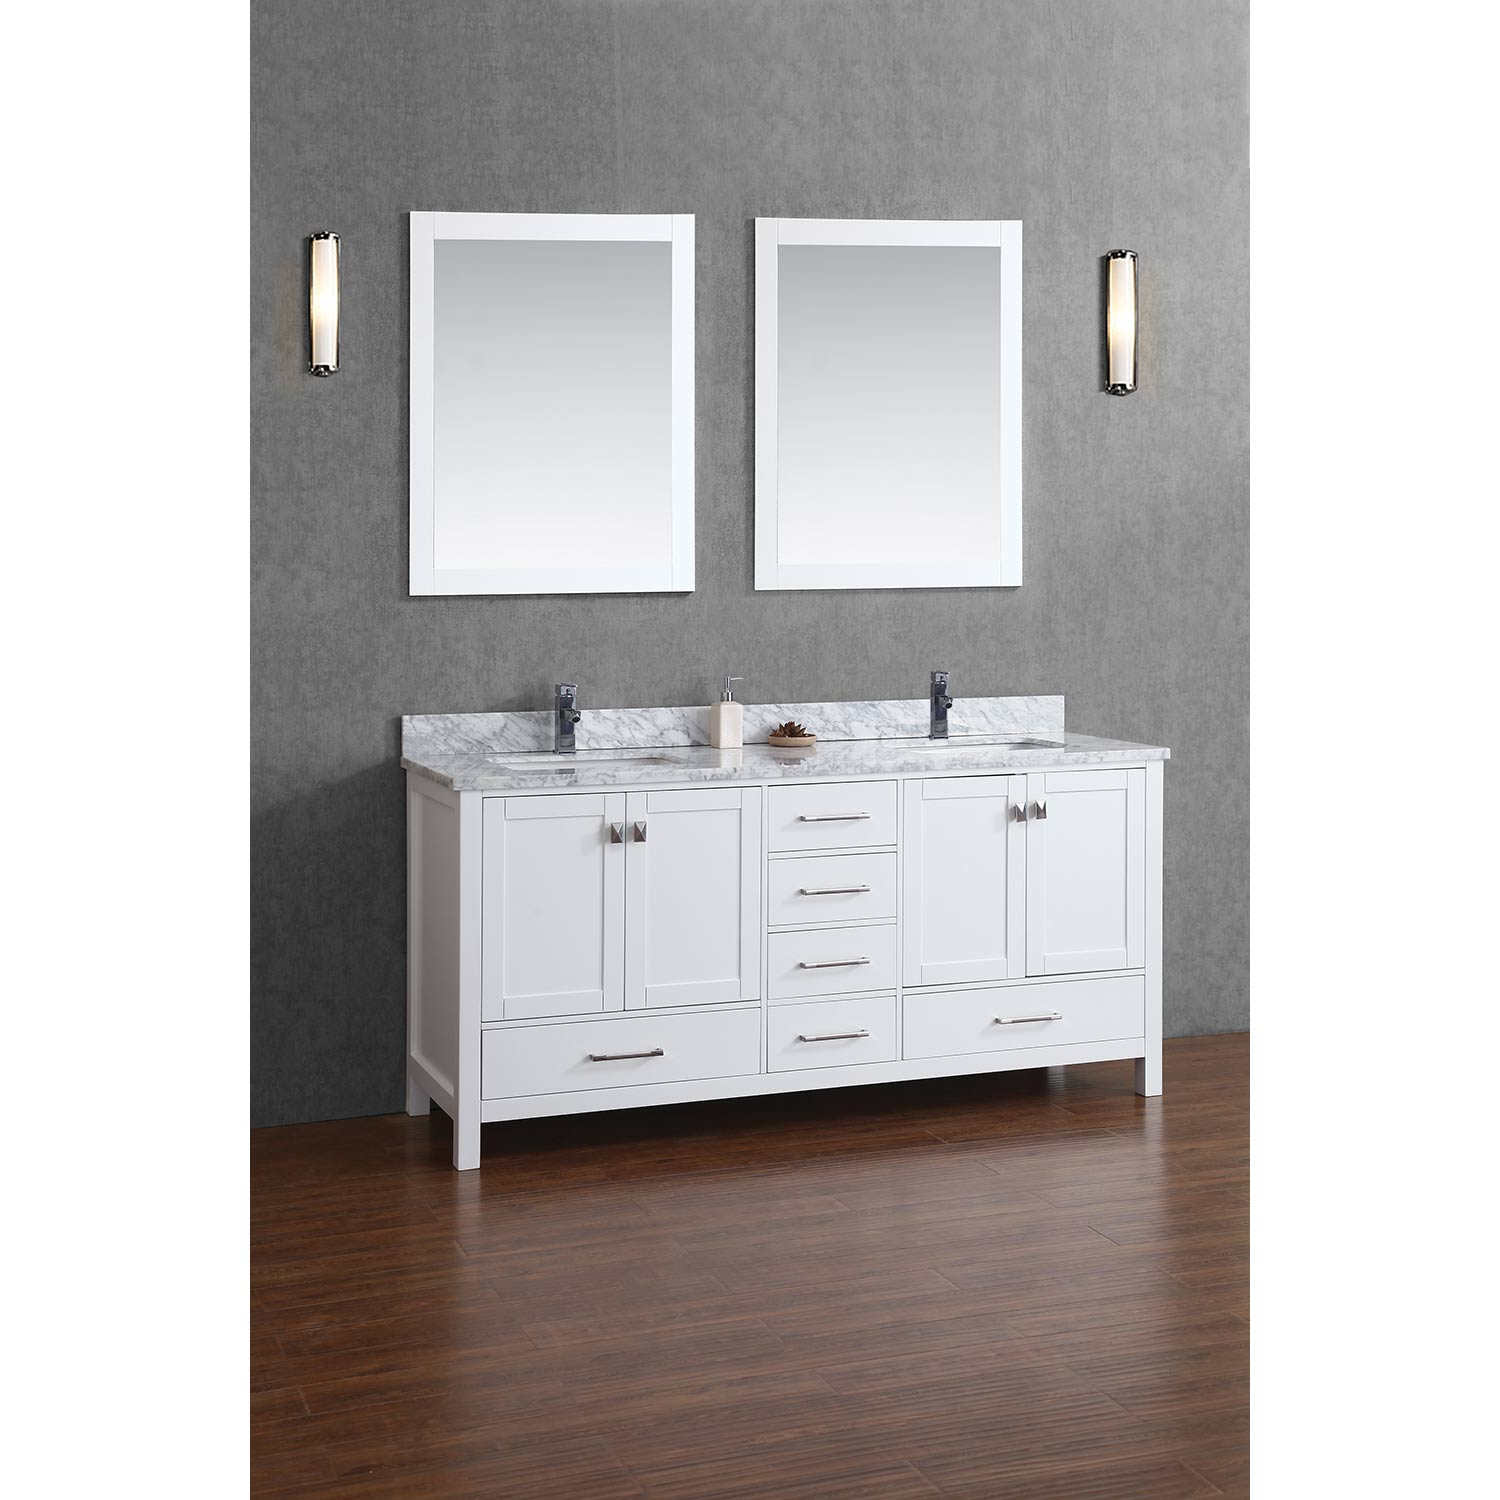 Buy Vincent 72 Inch Solid Wood Double Bathroom Vanity In White HM 13001 72 WM